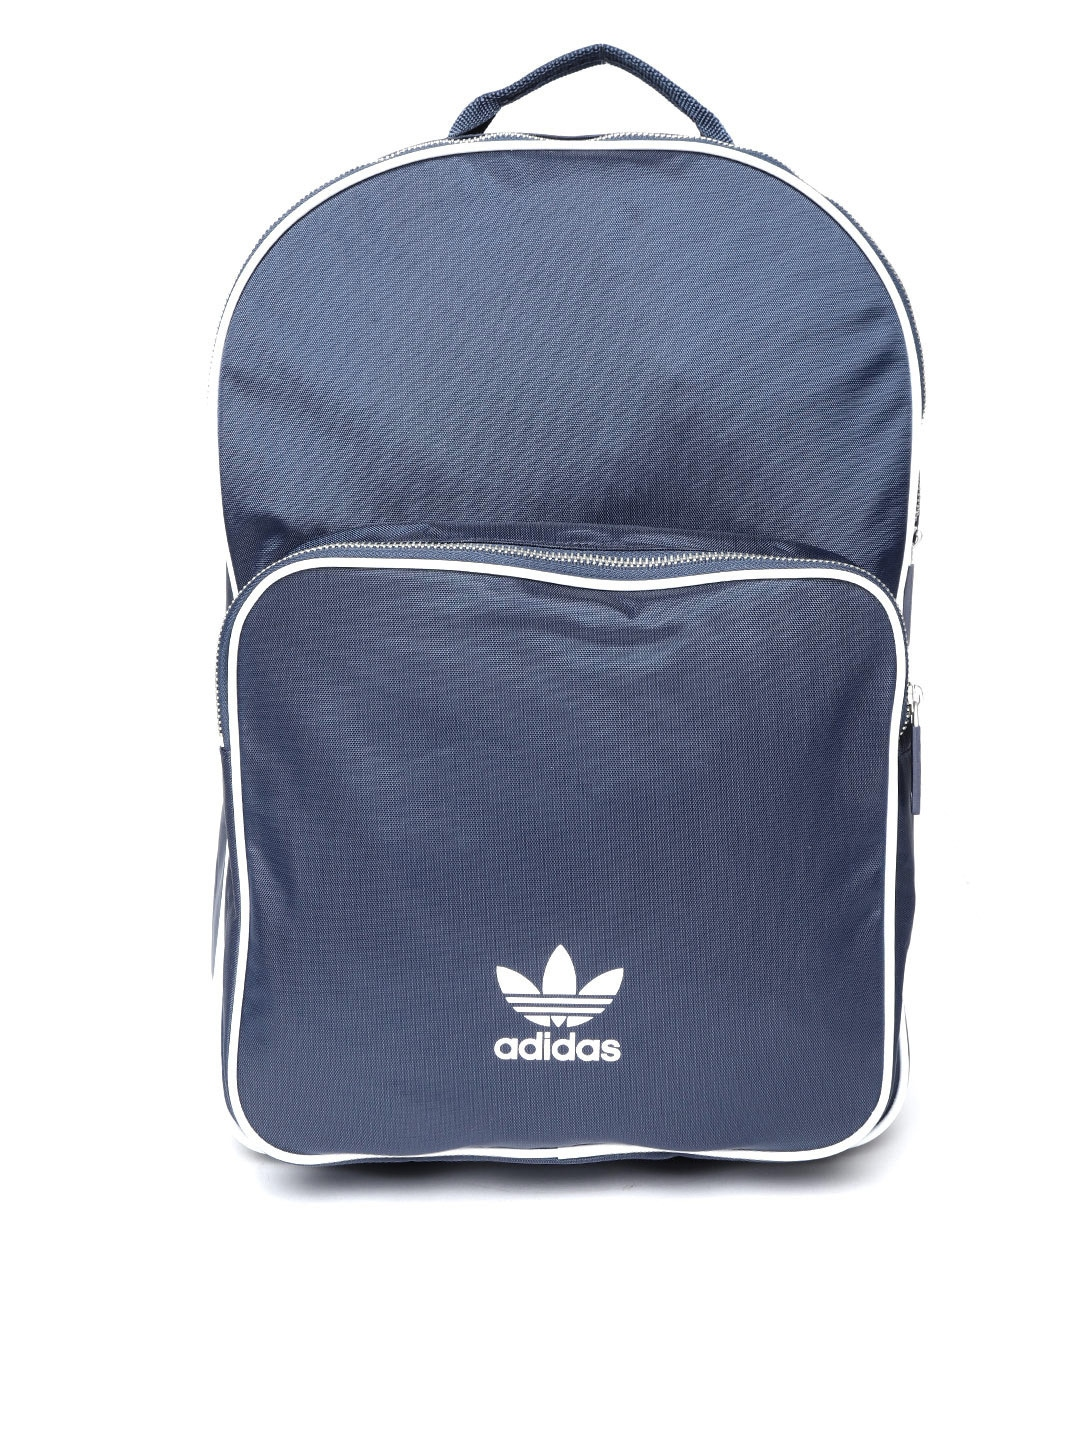 Adidas Original Backpacks - Buy Adidas Original Backpacks Online in India f795c0e7b7708